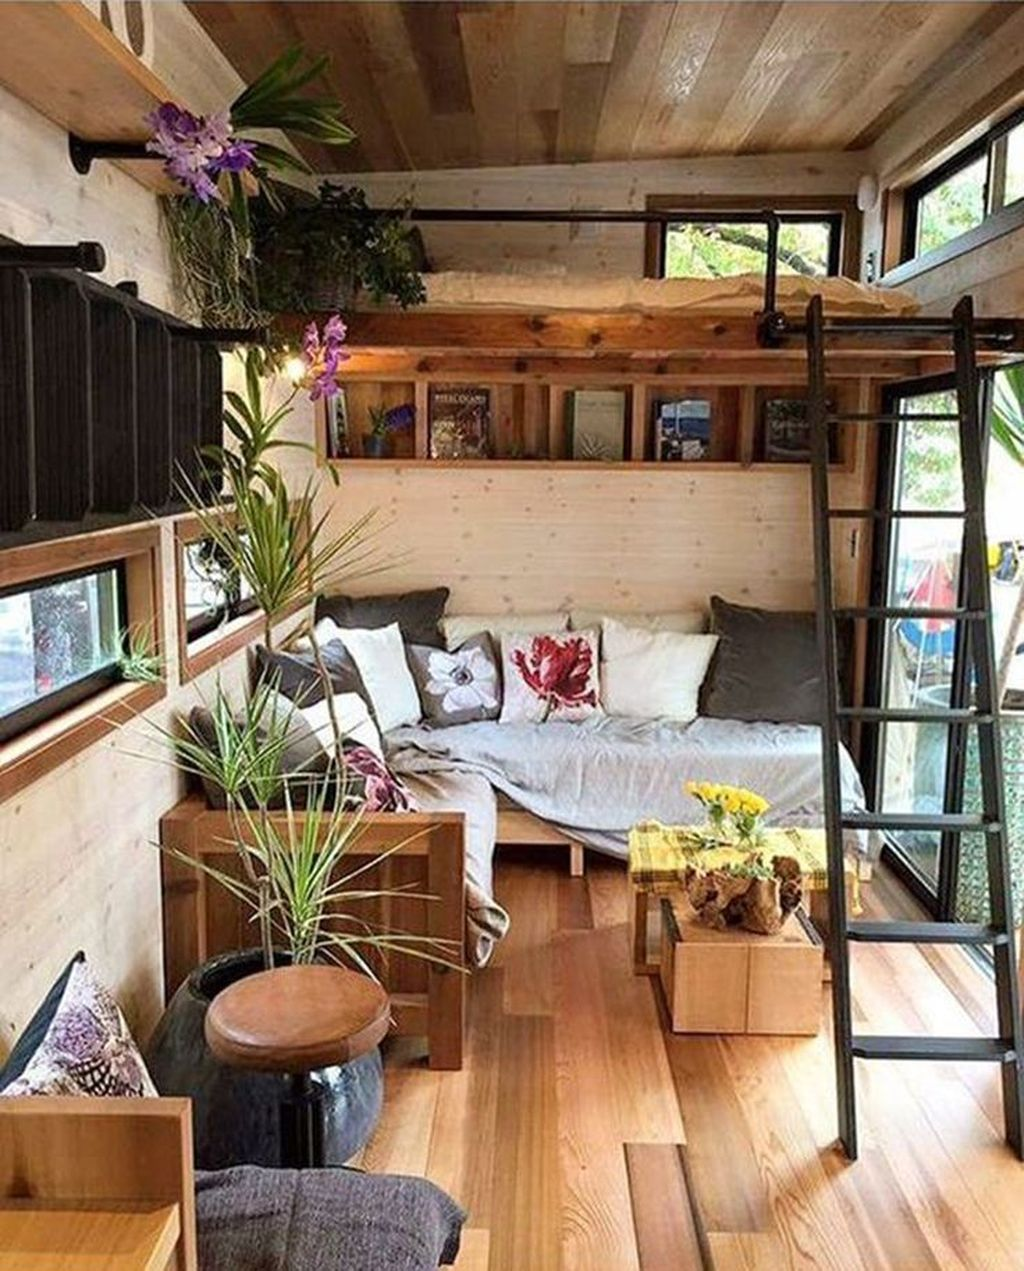 33 gorgeous tiny house interior design and decor ideas in on diy home decor on a budget apartment ideas id=76186